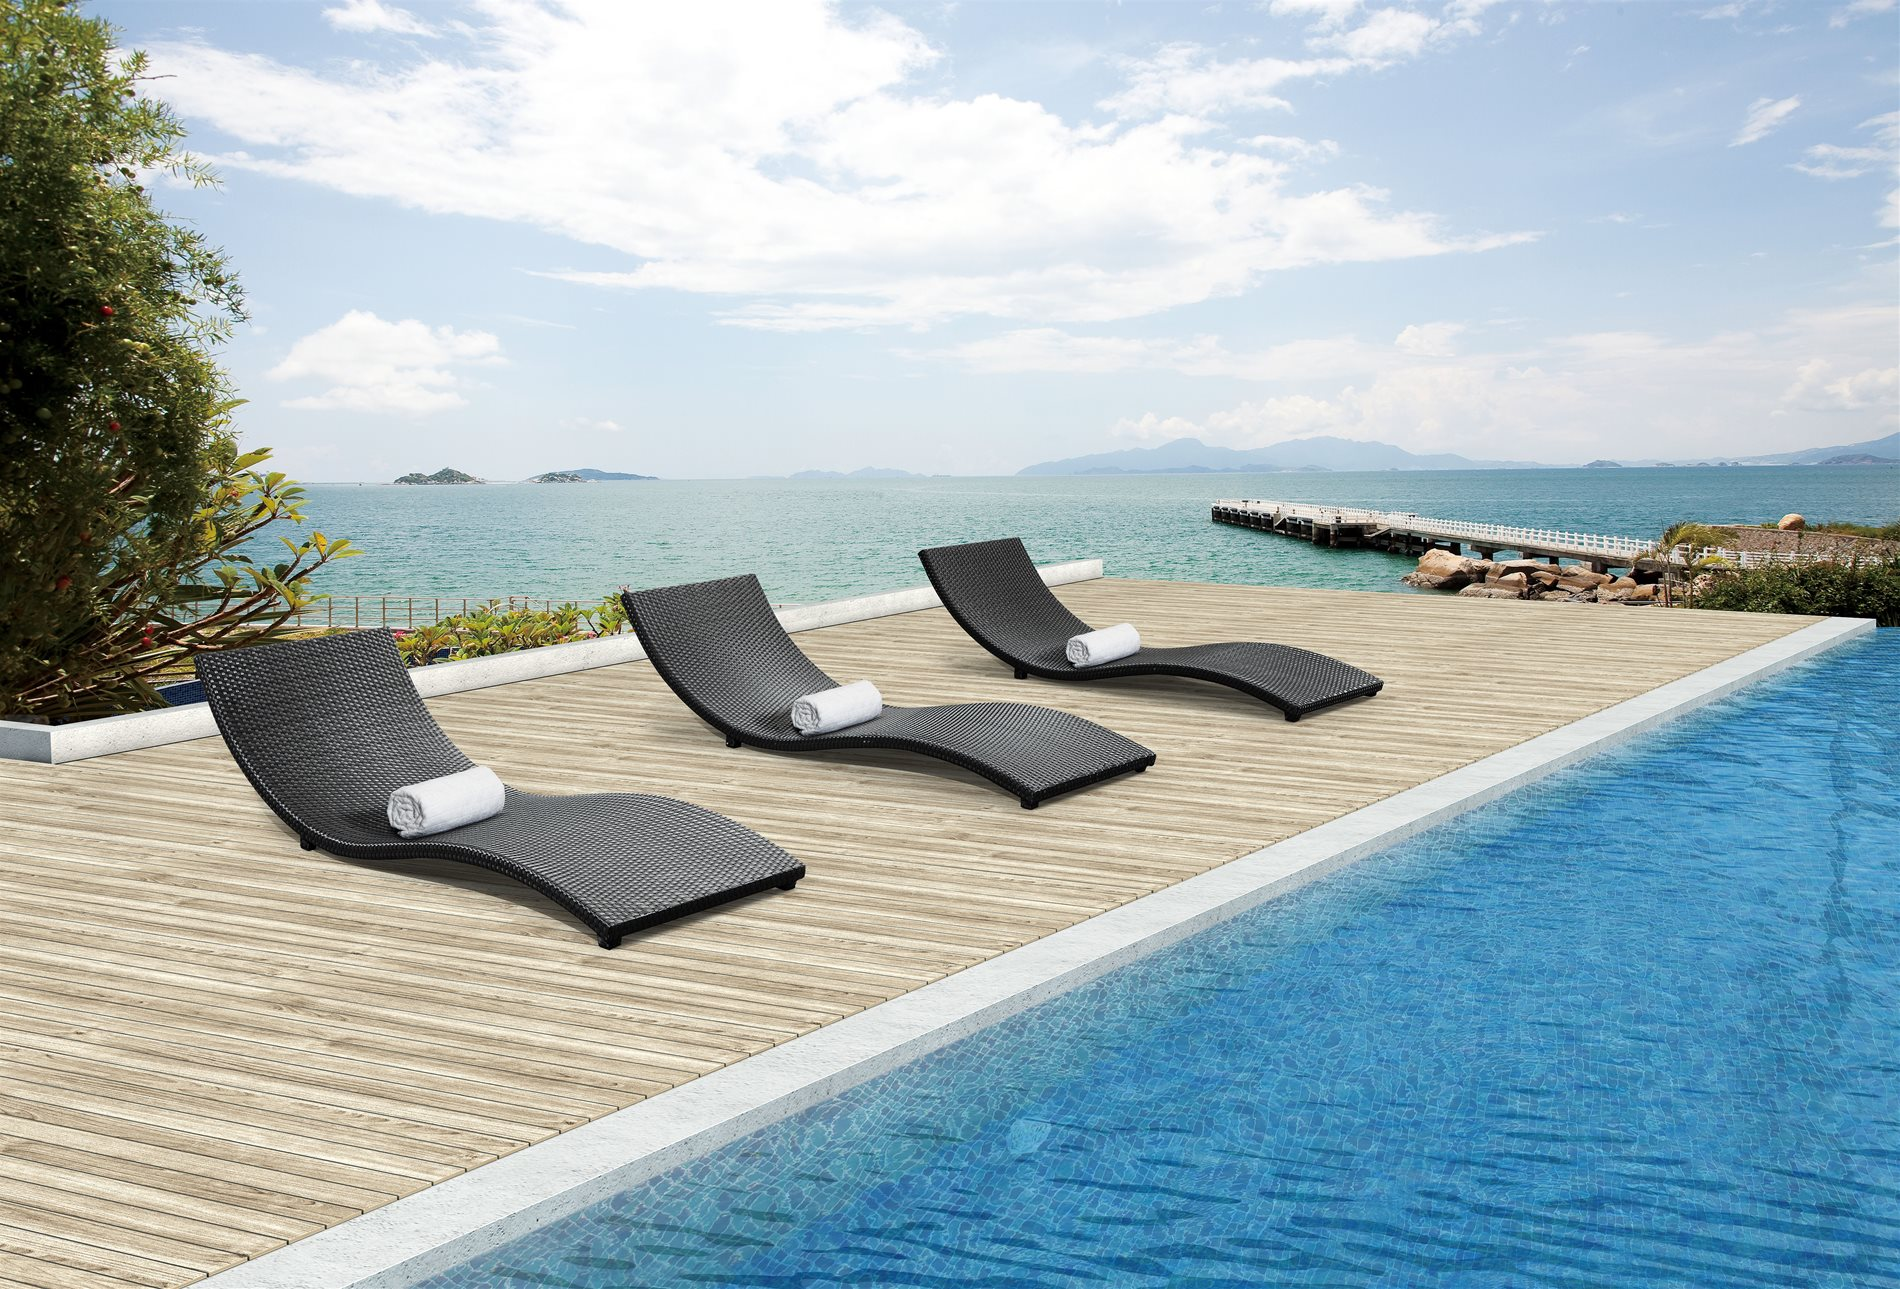 Phuket outdoor lounge chair xmz 011107 for Outdoor furniture phuket